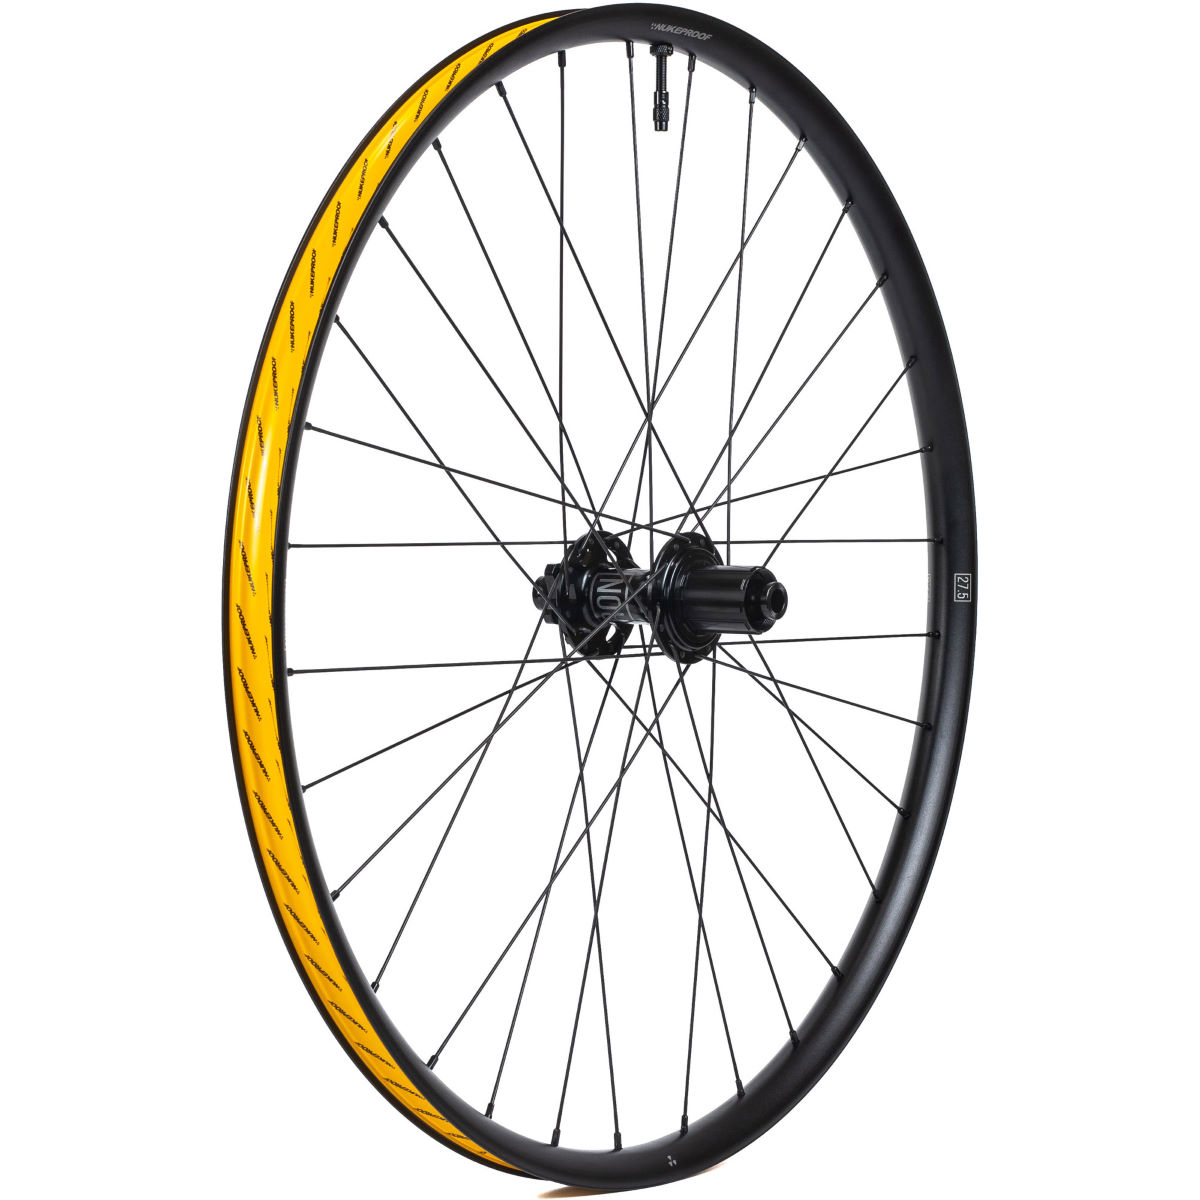 Nukeproof Nukeproof Neutron V2 Rear Wheel 36t   Back Wheels